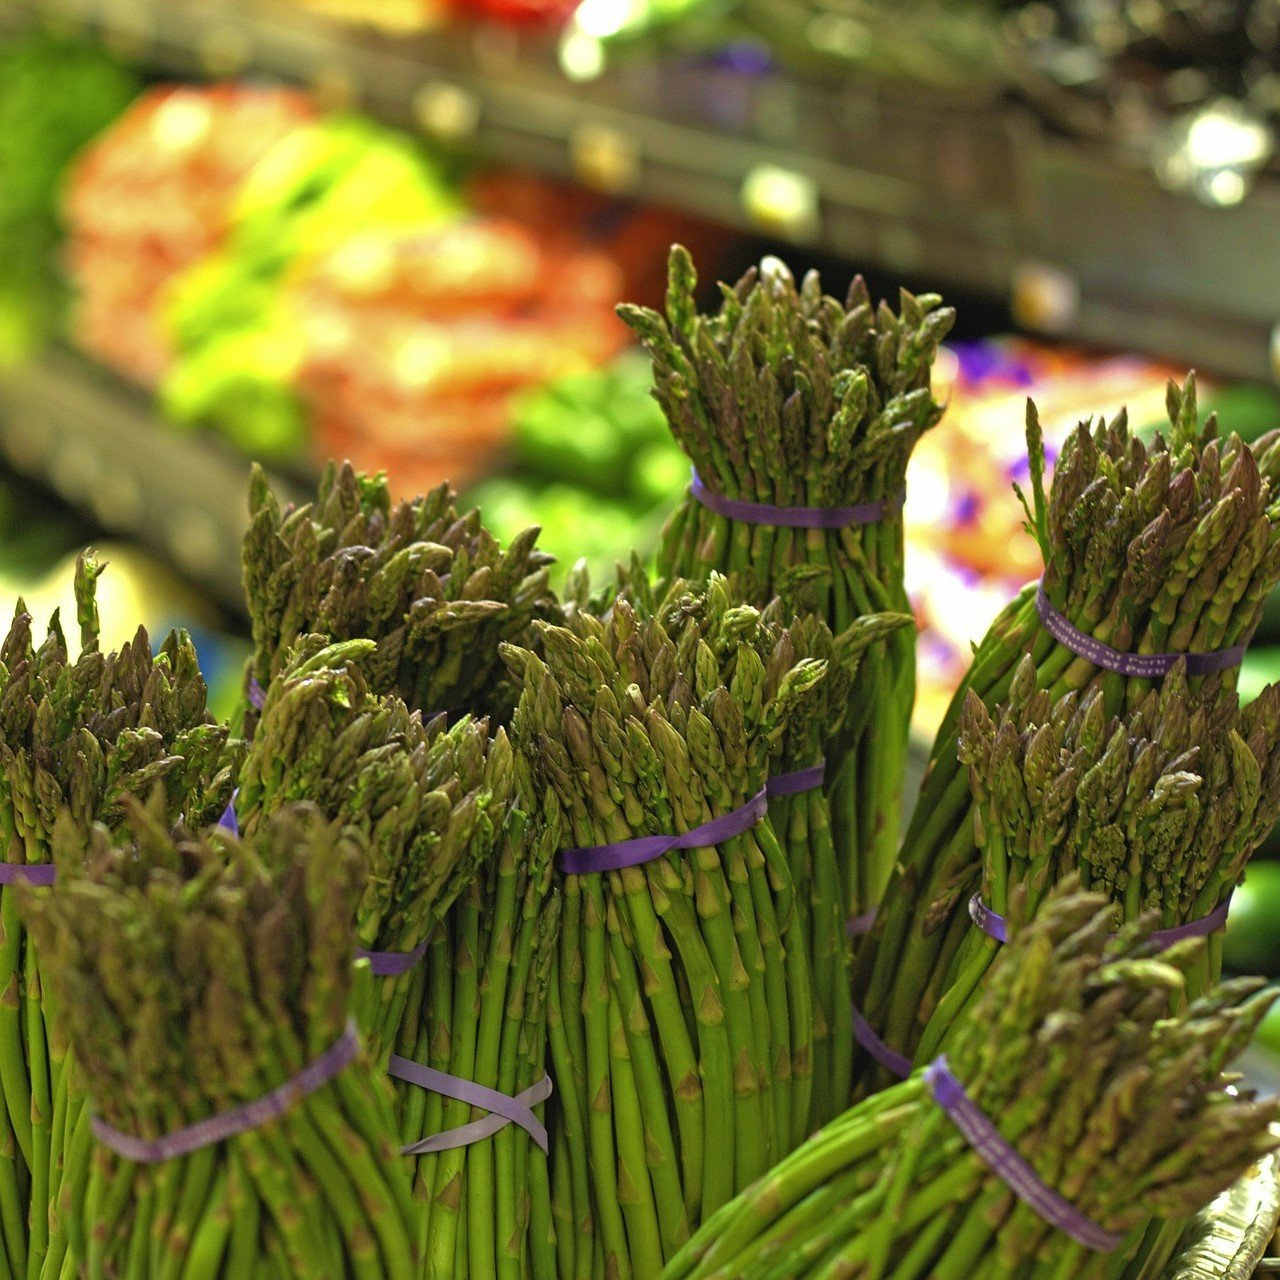 British Asparagus In-store Display